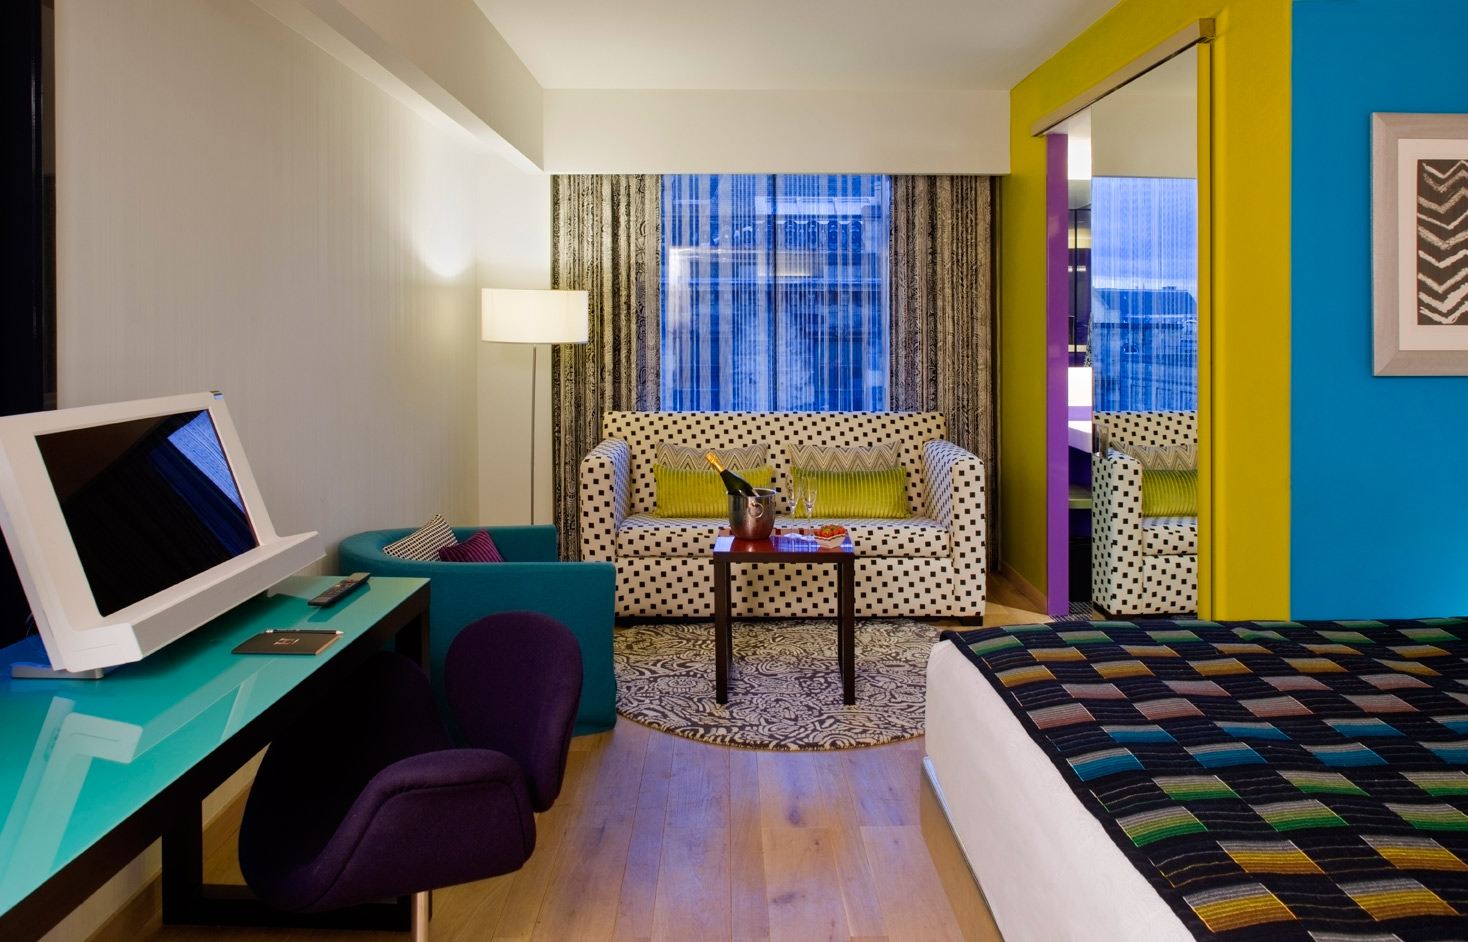 Photo: Deluxe Room. ©Quorvuscollection.com, Carlson Rezidor Hotel Group 2015.